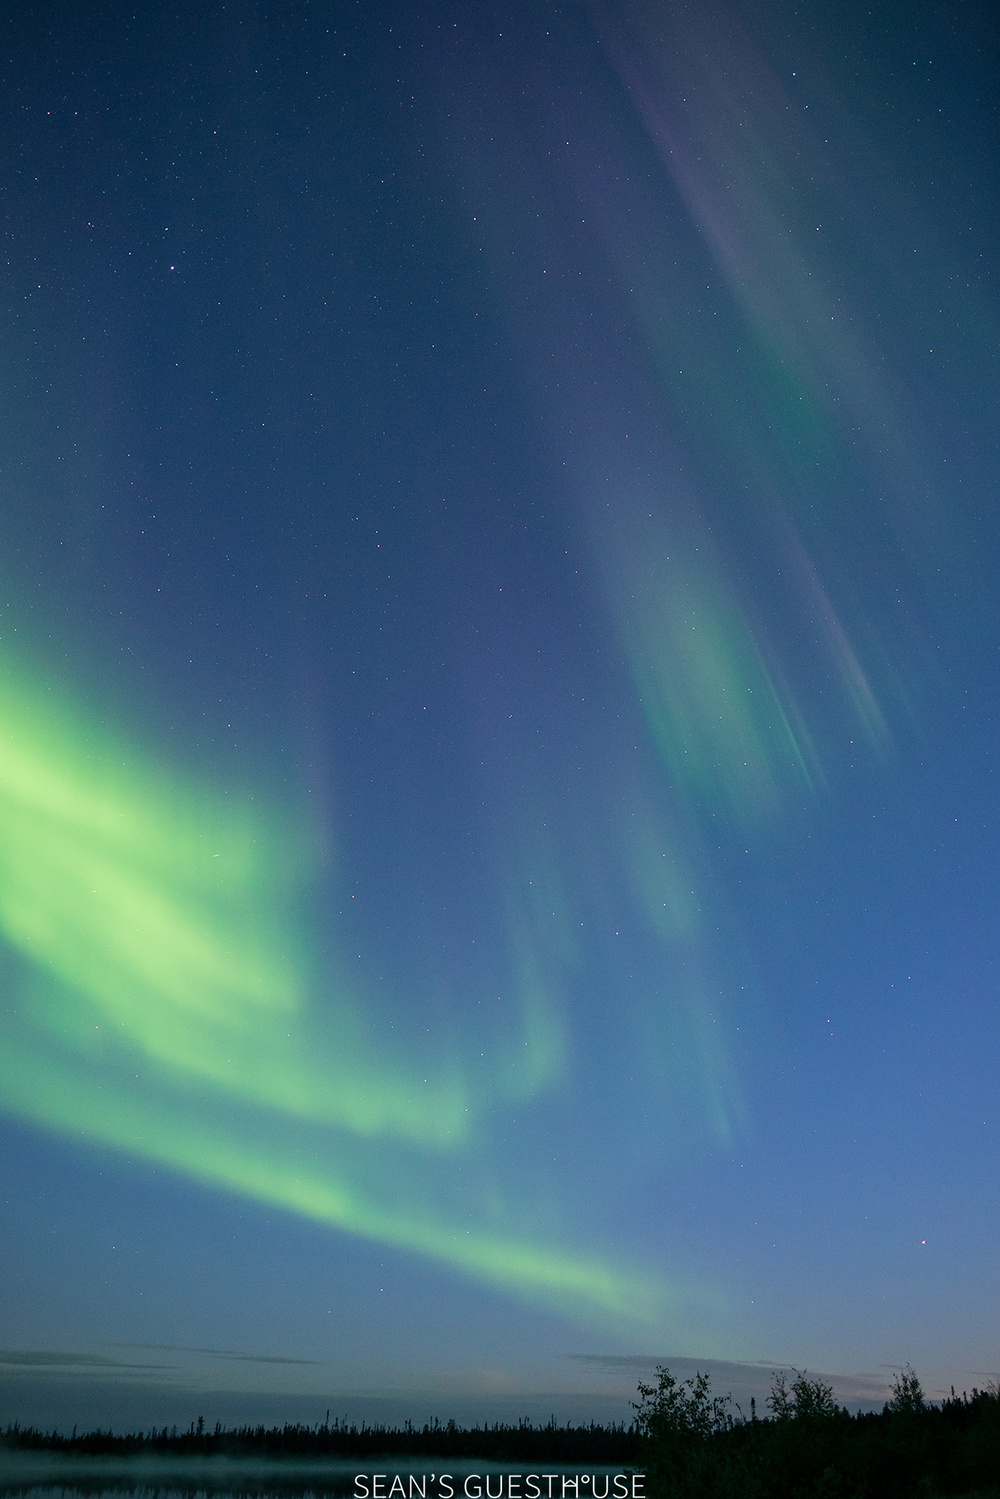 Sean's Guesthouse - Yellowknife Northern Lights - Summer Aurora - 5.jpg